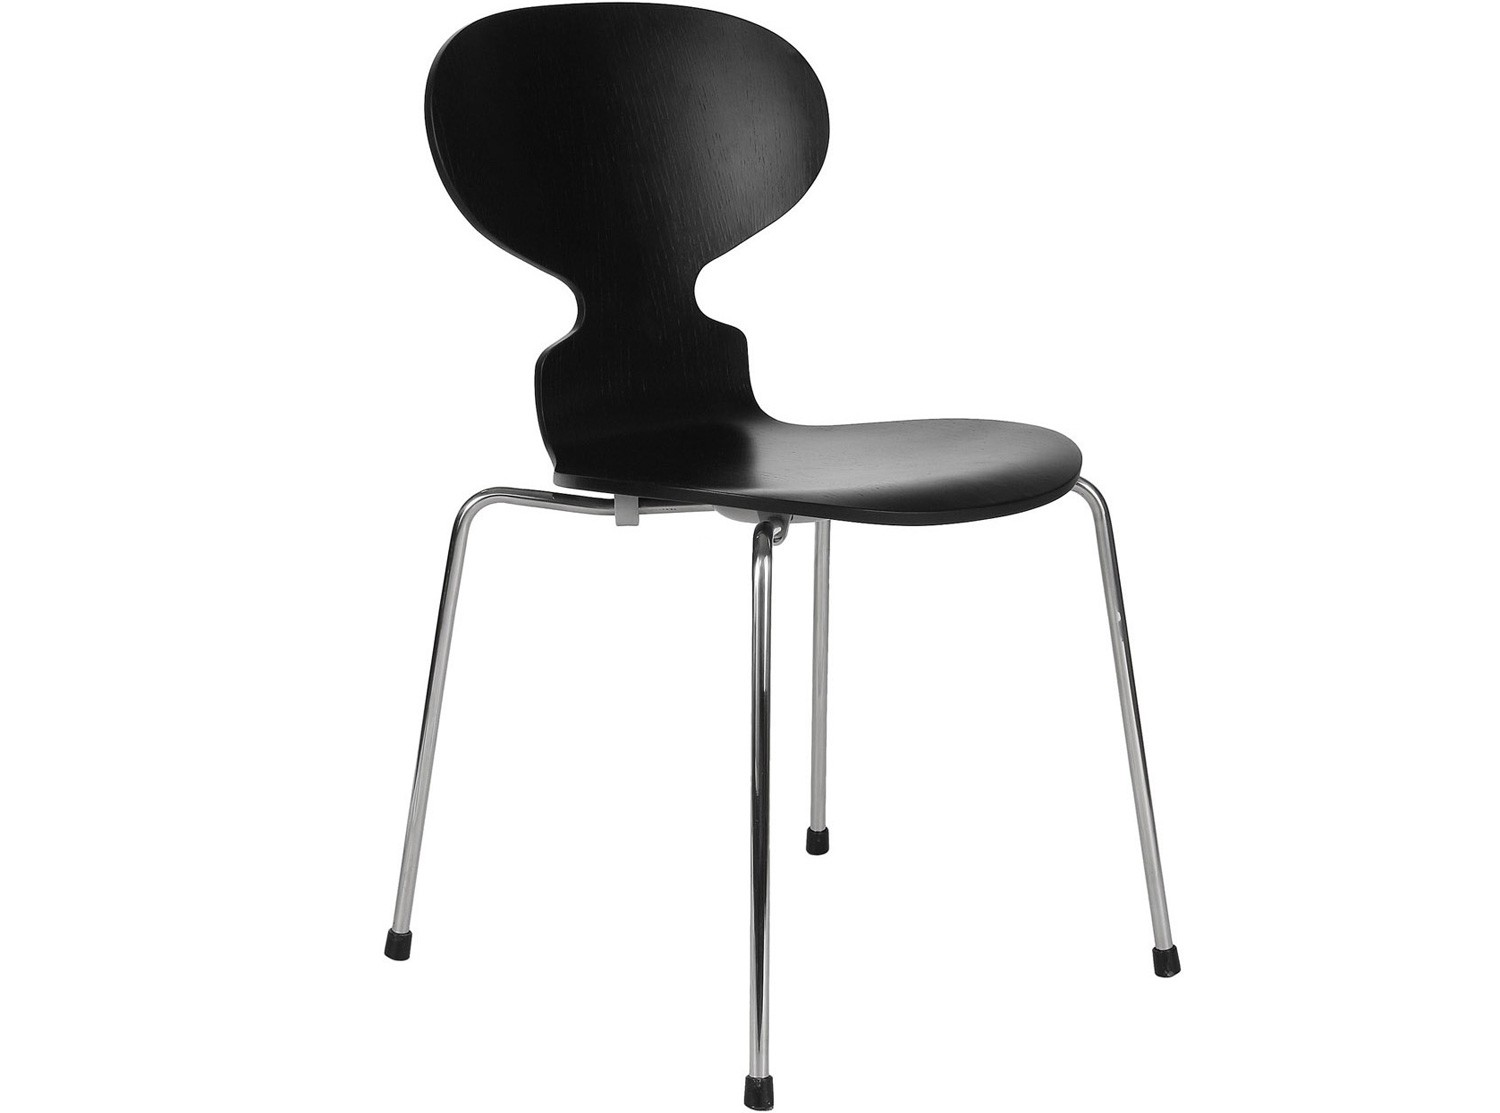 ant chair by arne jacobsen platinum replica. Black Bedroom Furniture Sets. Home Design Ideas